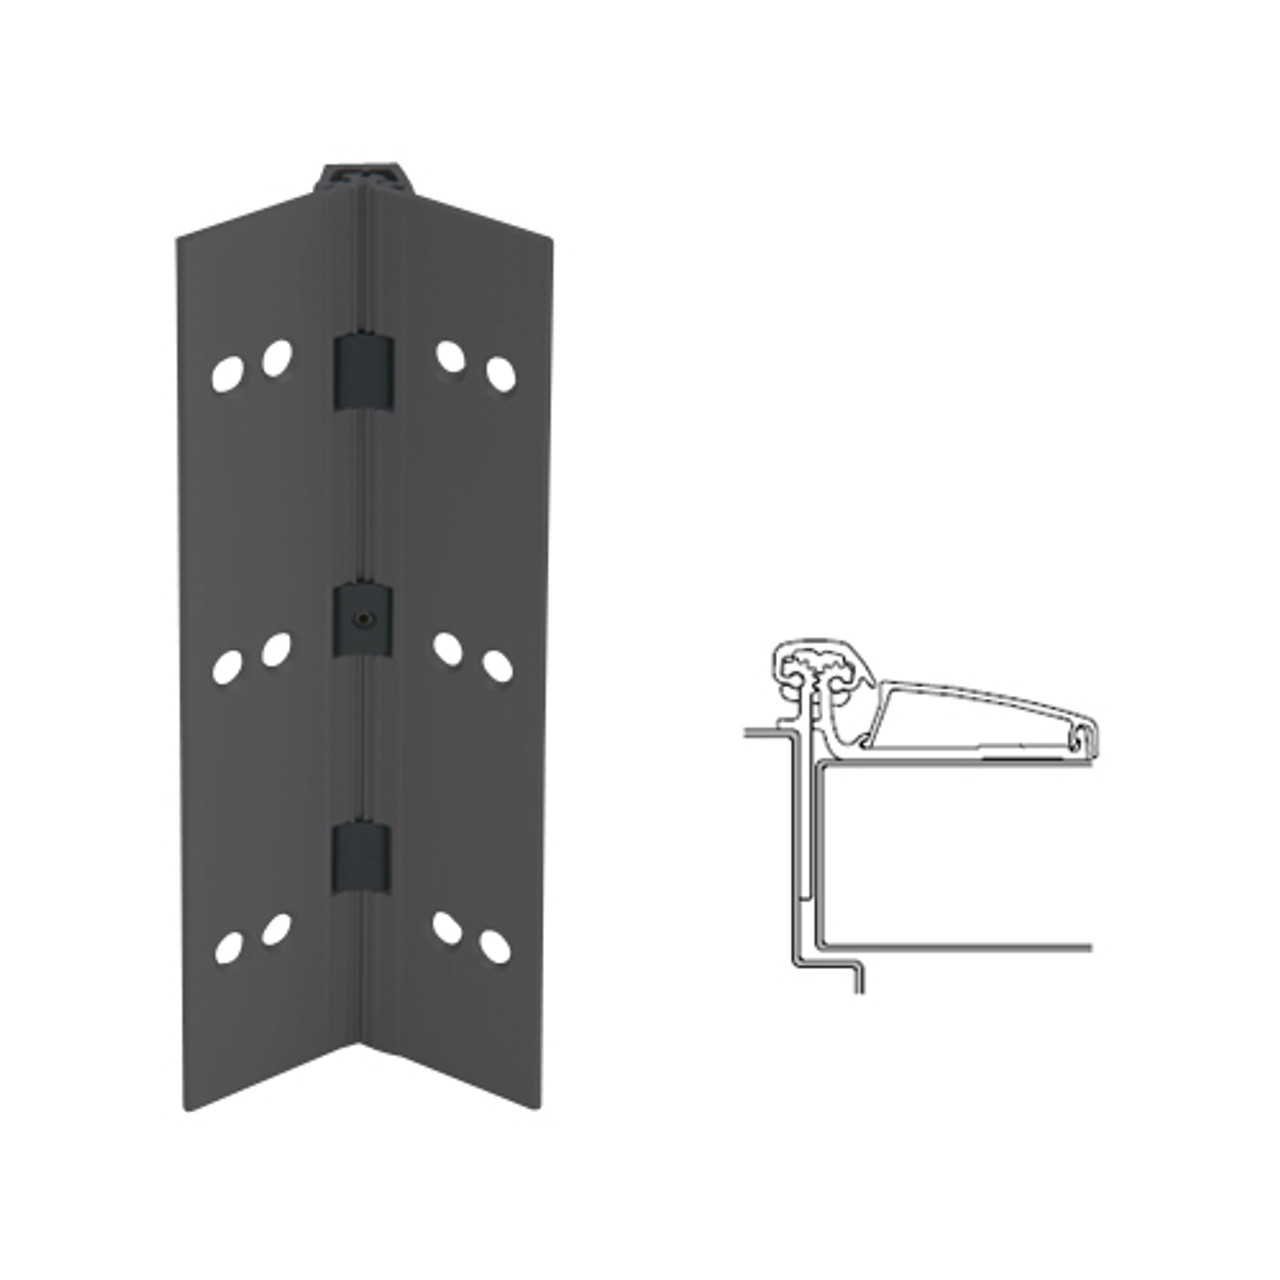 045XY-315AN-95-WD IVES Adjustable Half Surface Continuous Geared Hinges with Wood Screws in Anodized Black